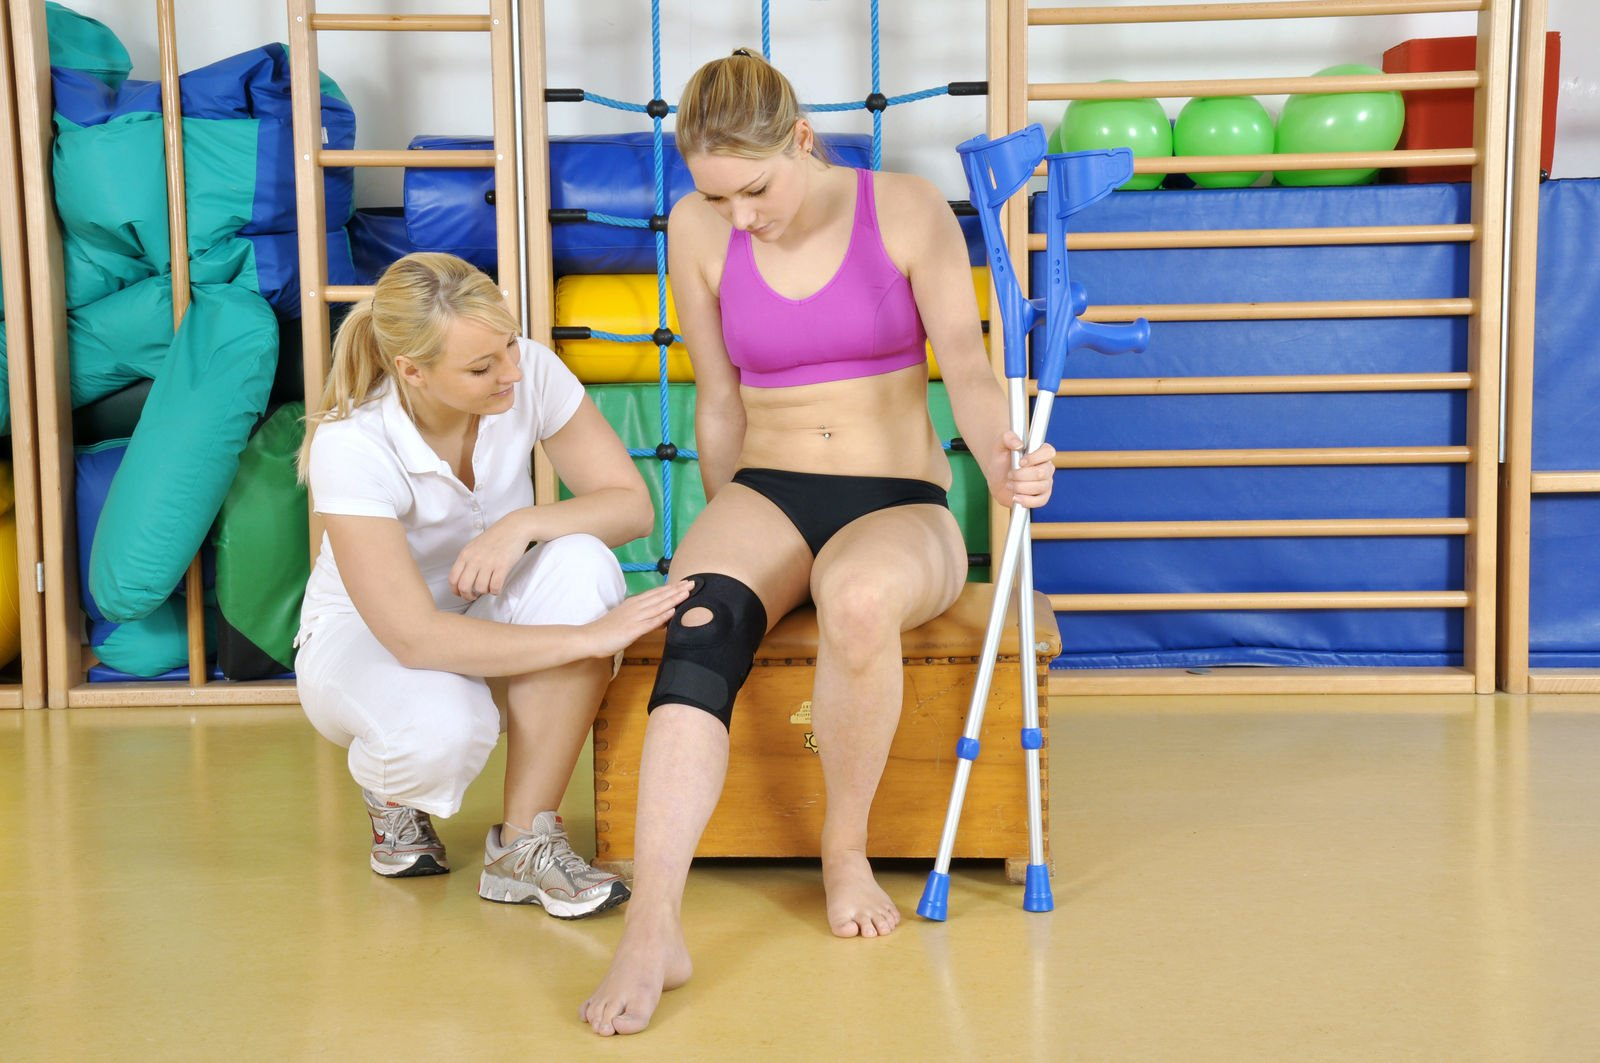 Can a personal trainer work in a hospital?